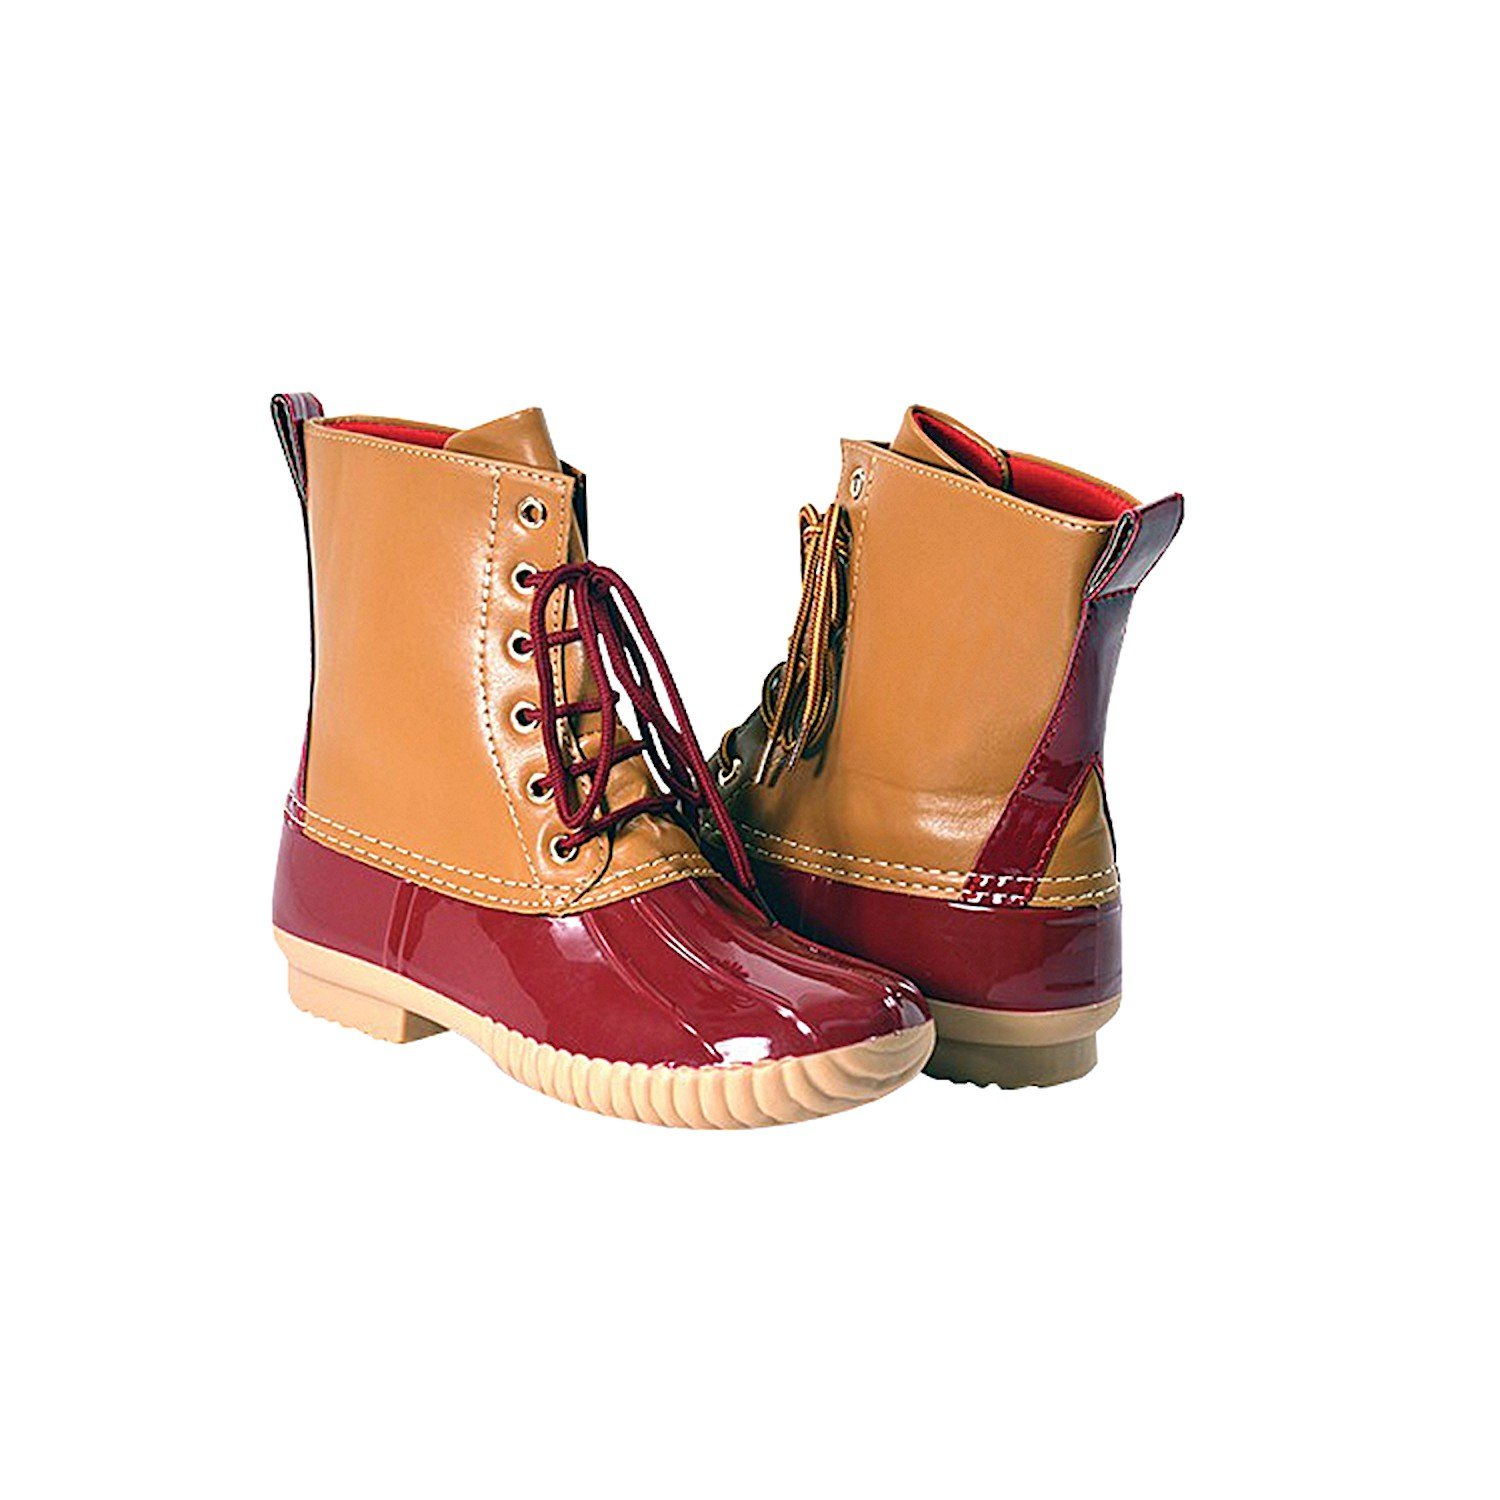 Avanti Women's Rosetta Duck Boots - Waterproof - Size 9 - Red